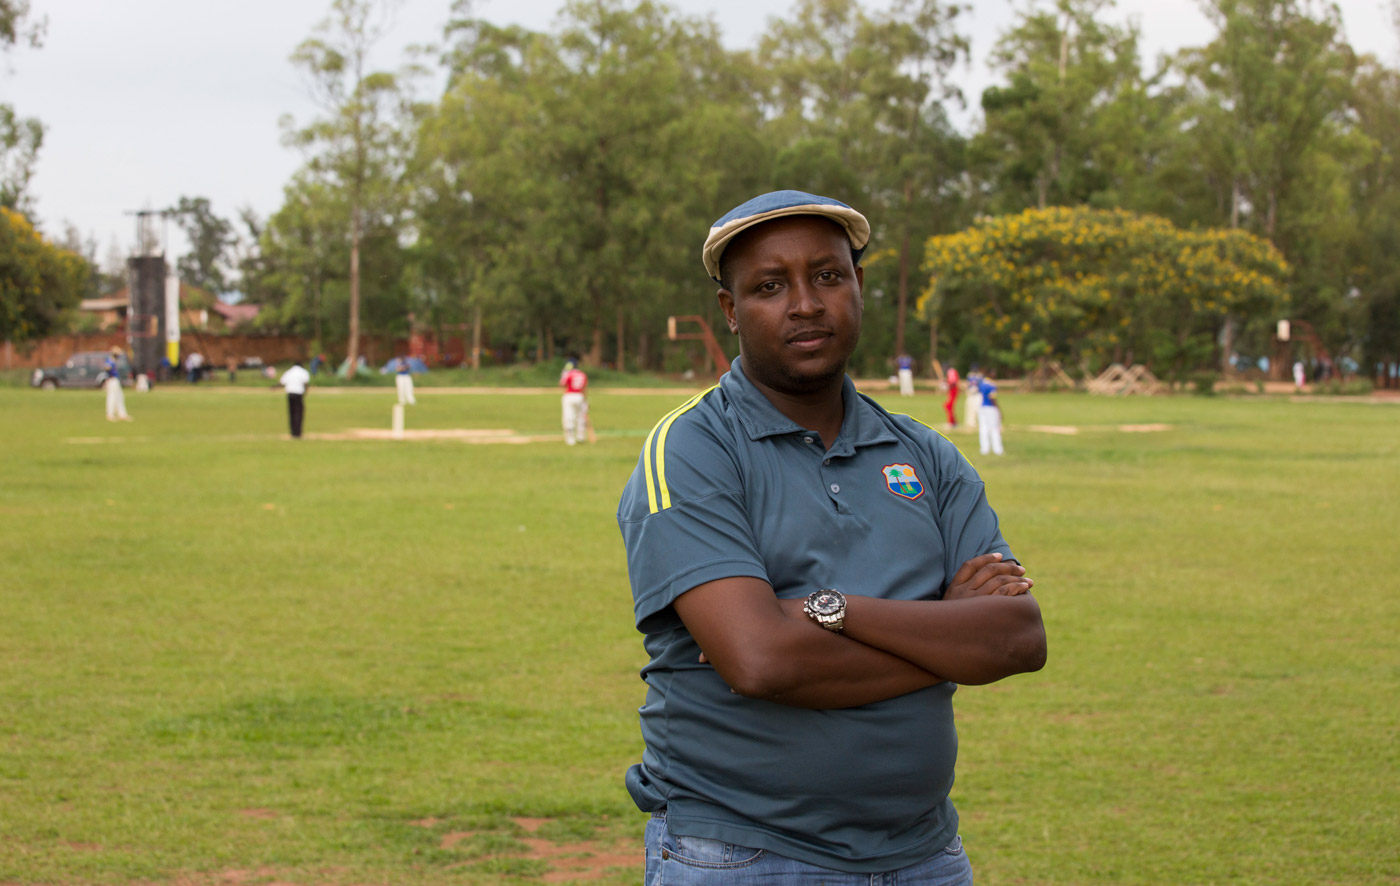 Former national player Charles Haba is now the president of the Rwanda Cricket Association